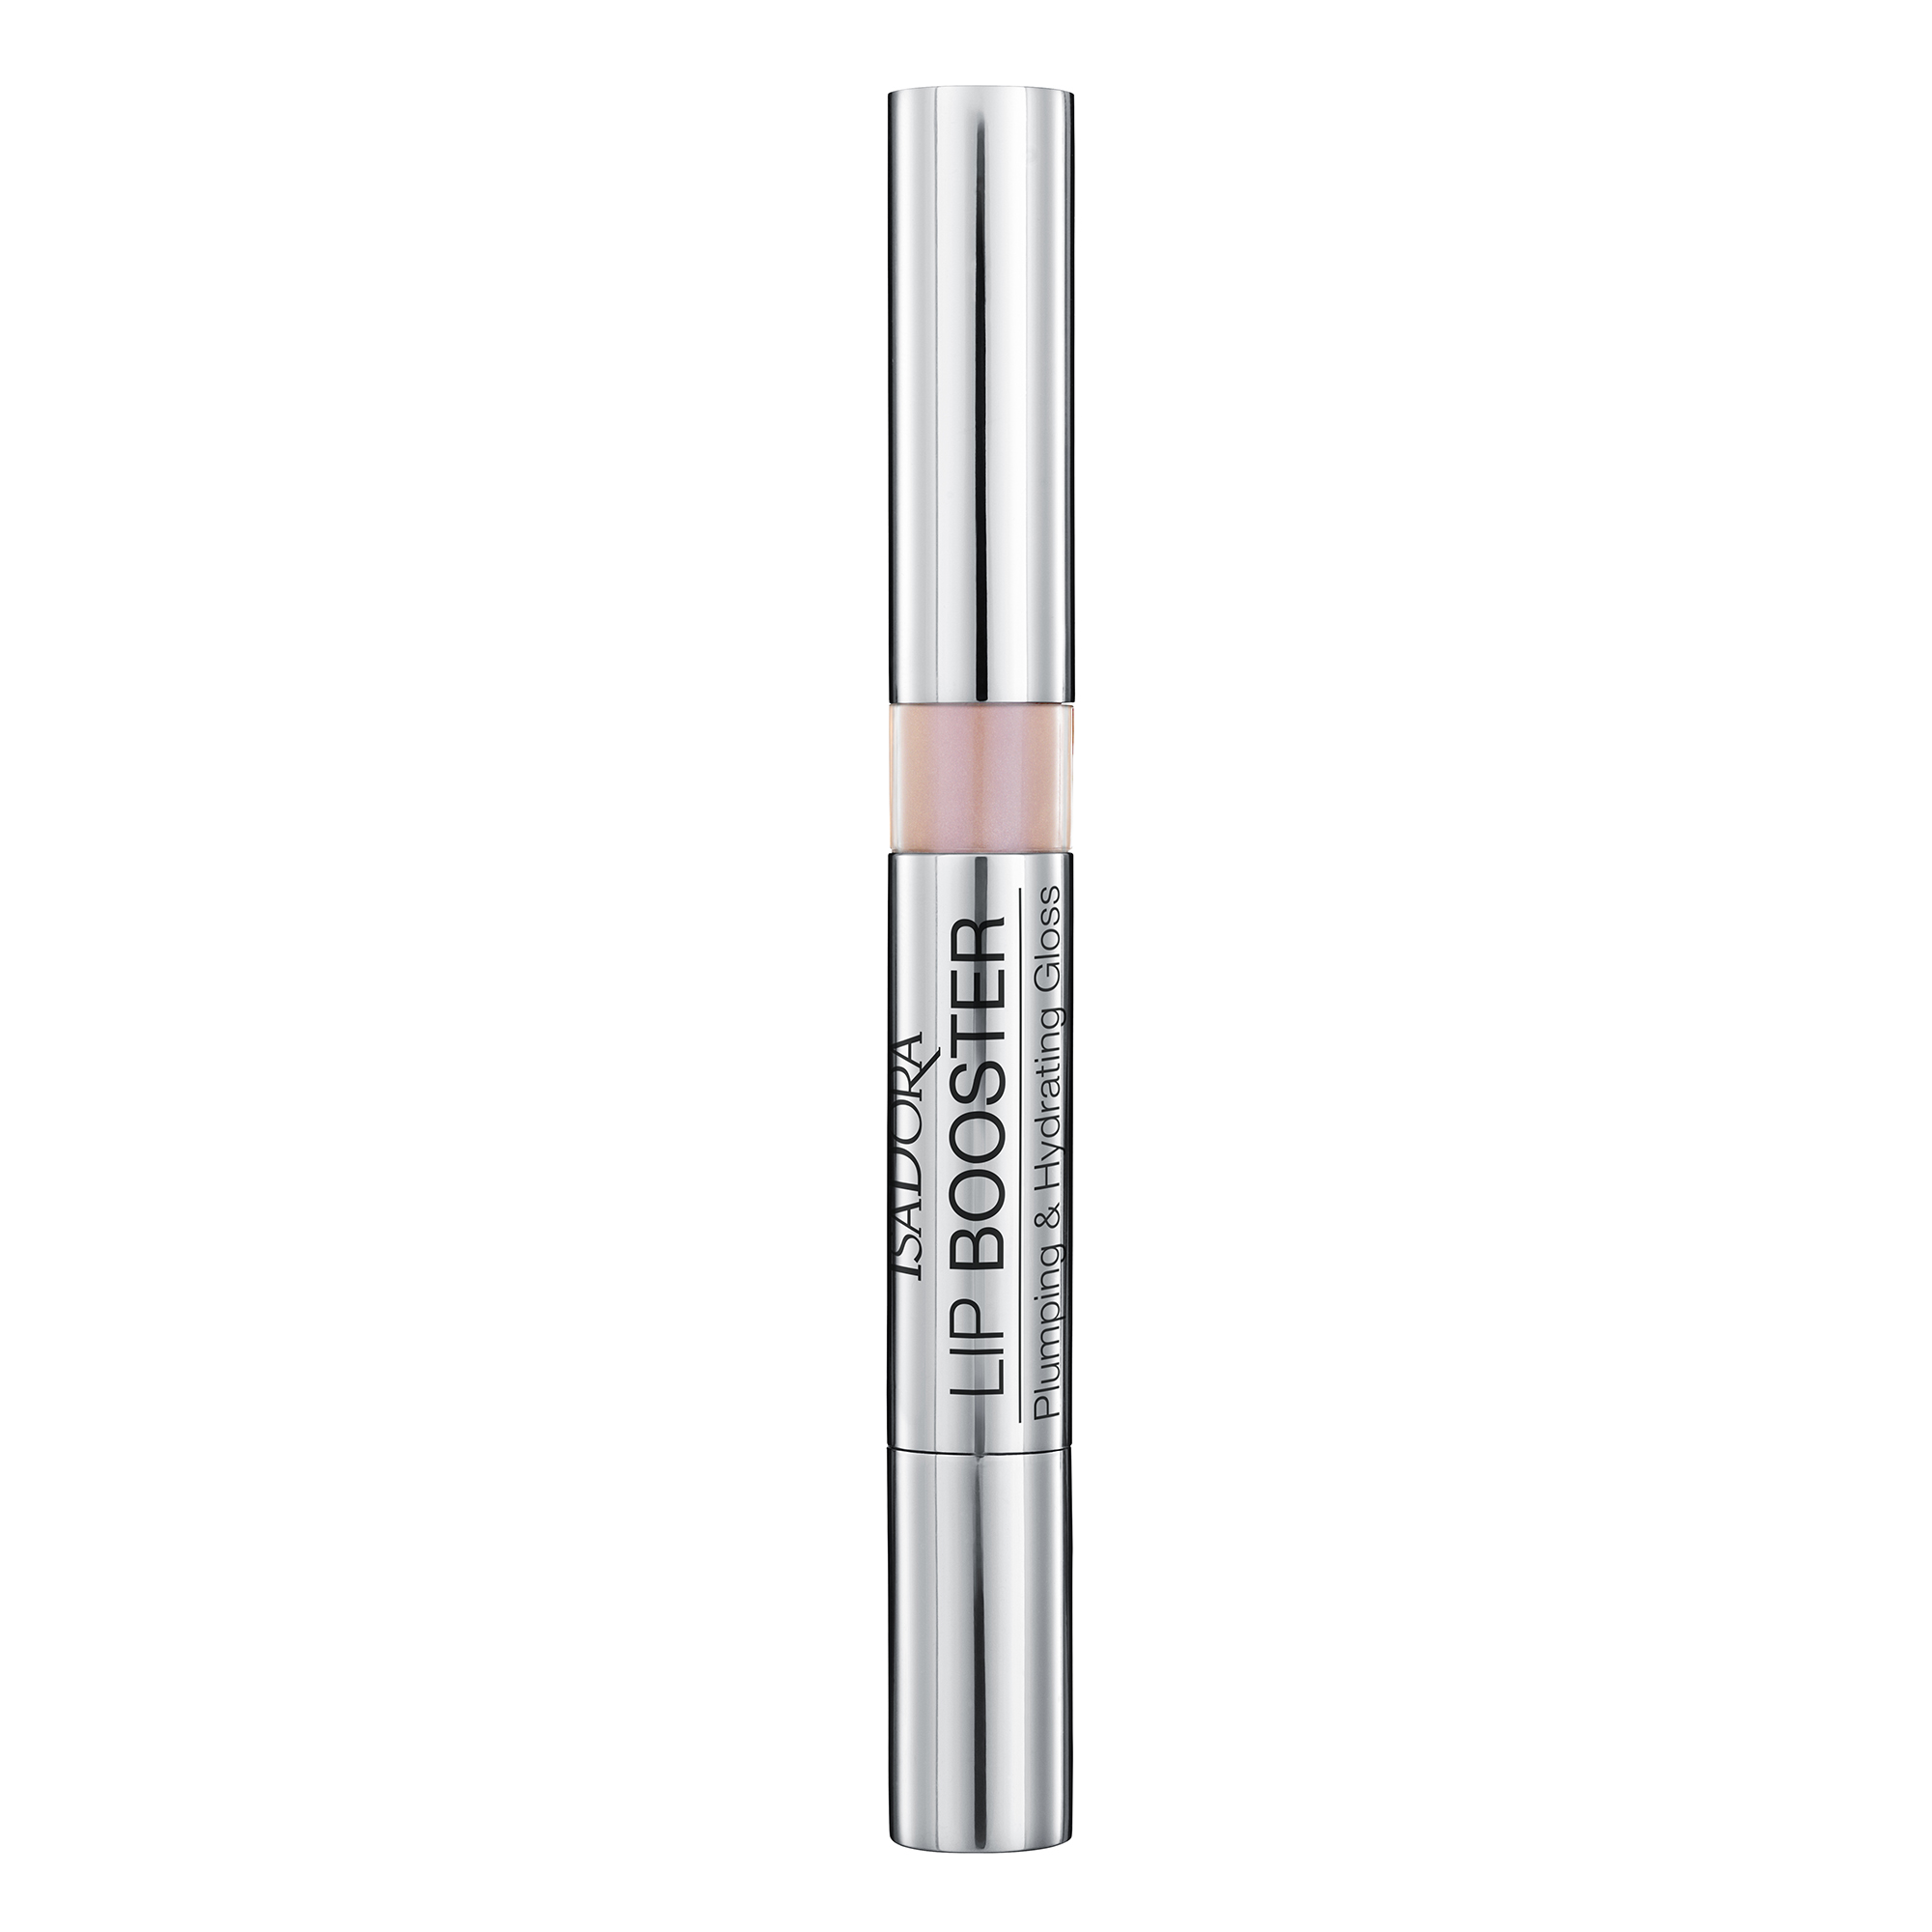 Lip Booster Plumping & Hydrating Gloss 01 Crystal Clear